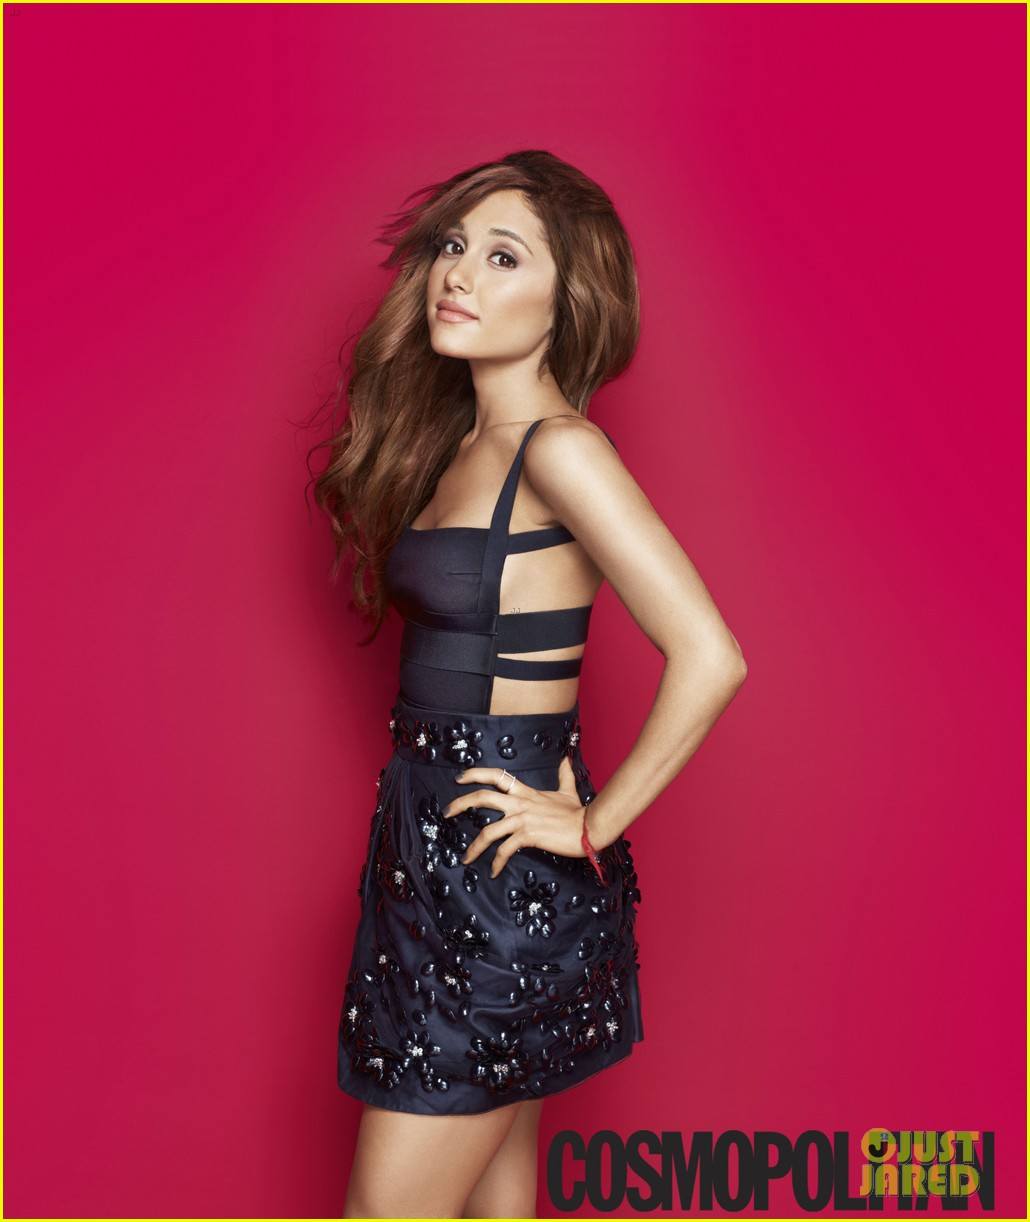 ariana grande covers cosmopolitan february 2014 01